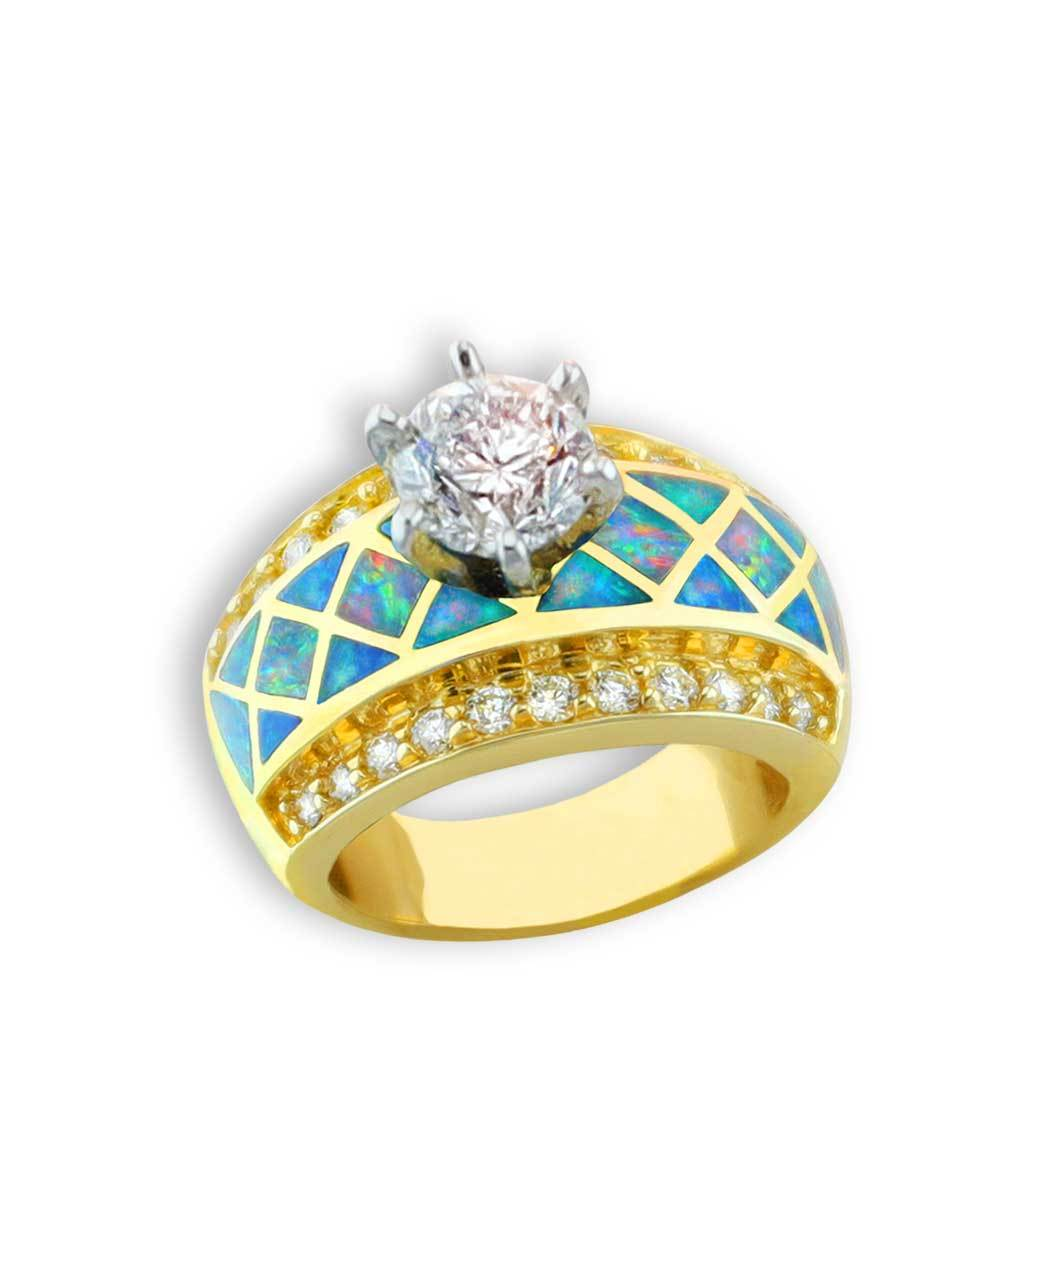 Maverick's - Diamond Solitaire 14K Gold Ring With Opal Pattern